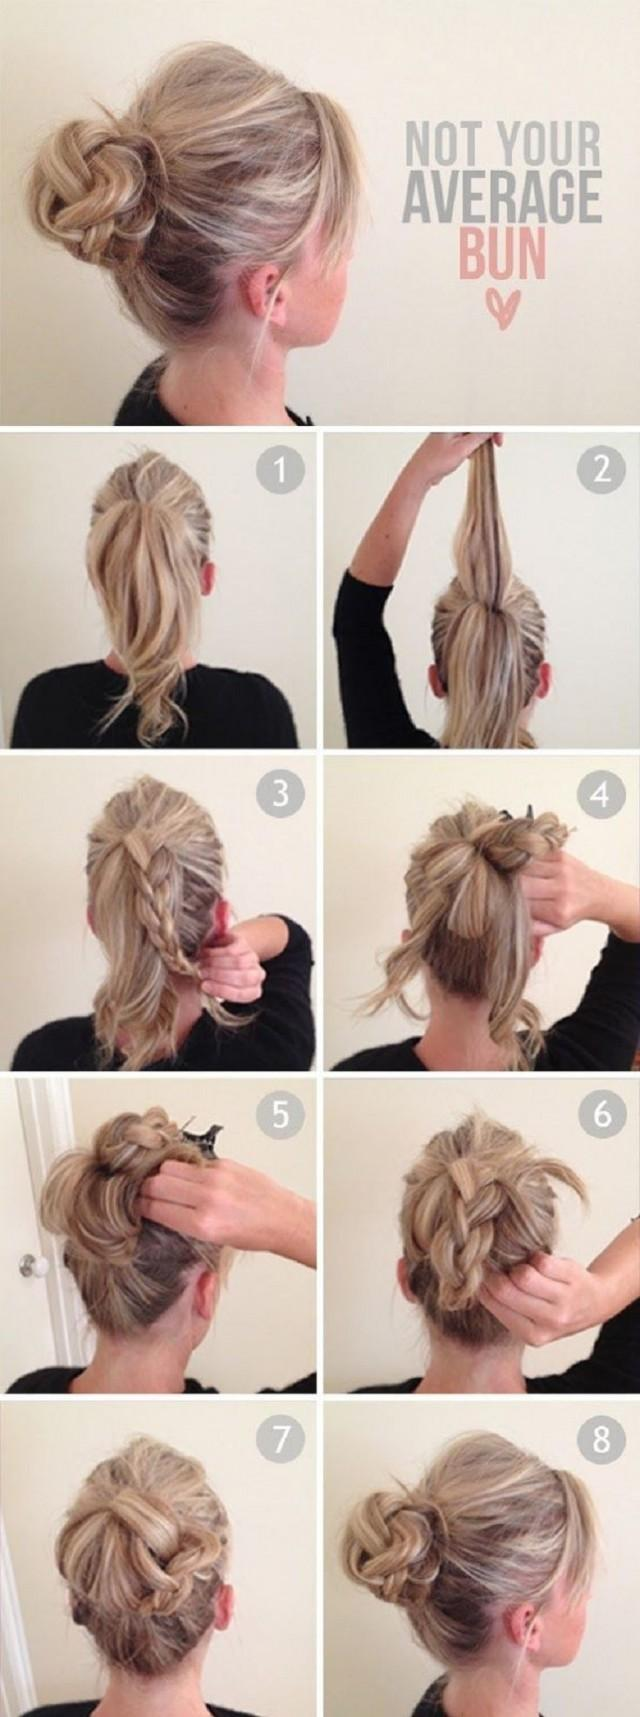 Hairstyles tumblr tutorial bun